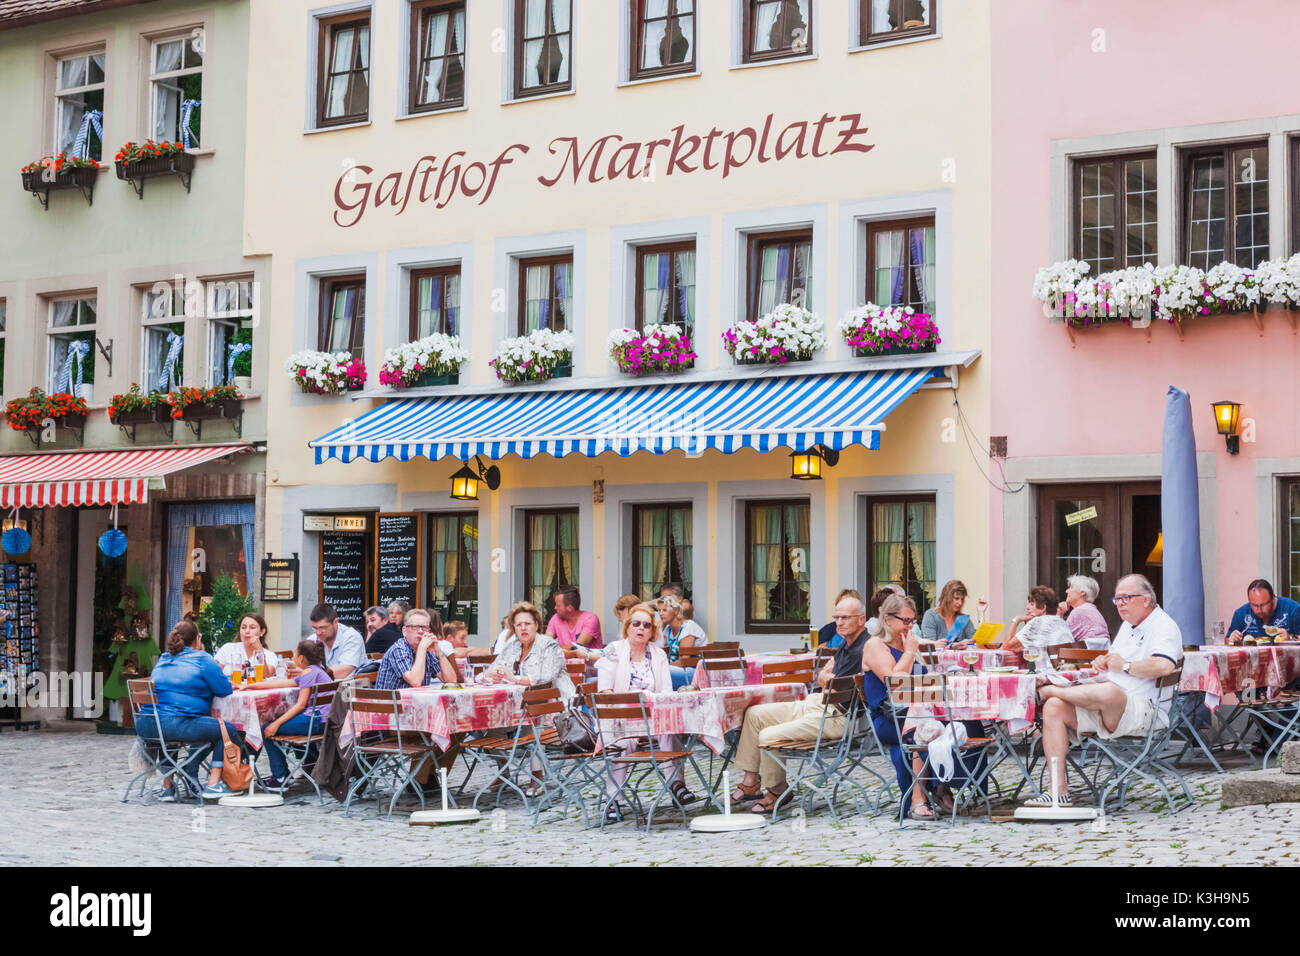 rothenburg ob der tauber stock photos rothenburg ob der tauber stock images alamy. Black Bedroom Furniture Sets. Home Design Ideas